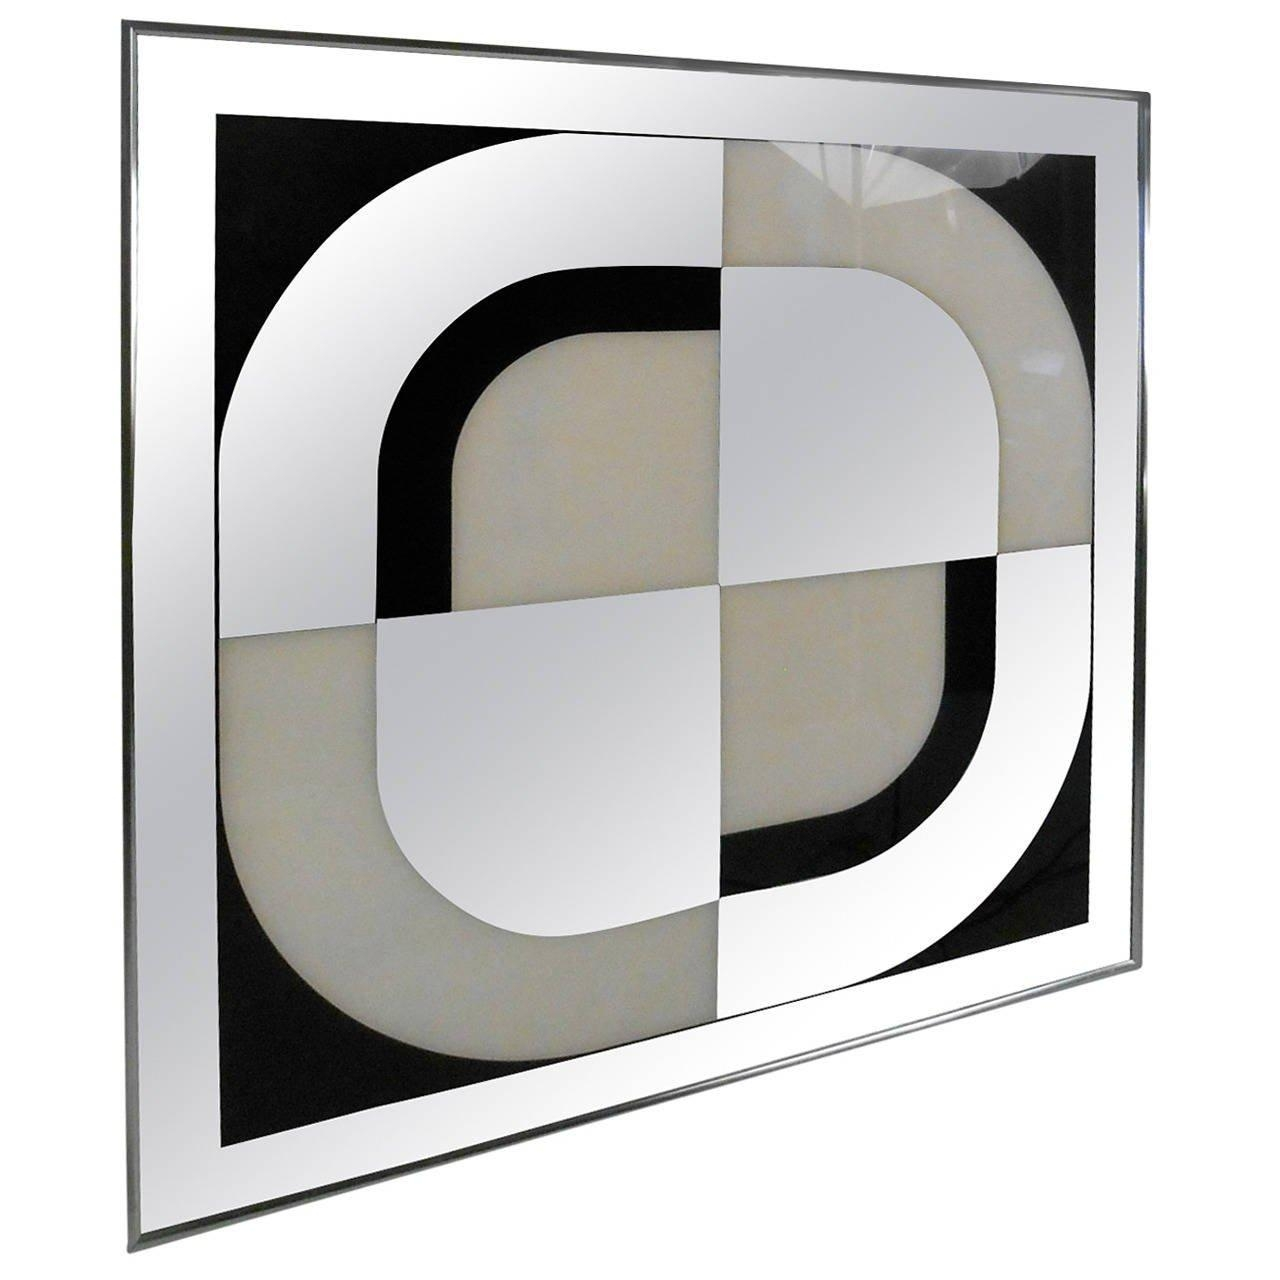 Unique Mid-Century Modern Mirrored Wall Artturner Design For inside Modern Mirrored Wall Art